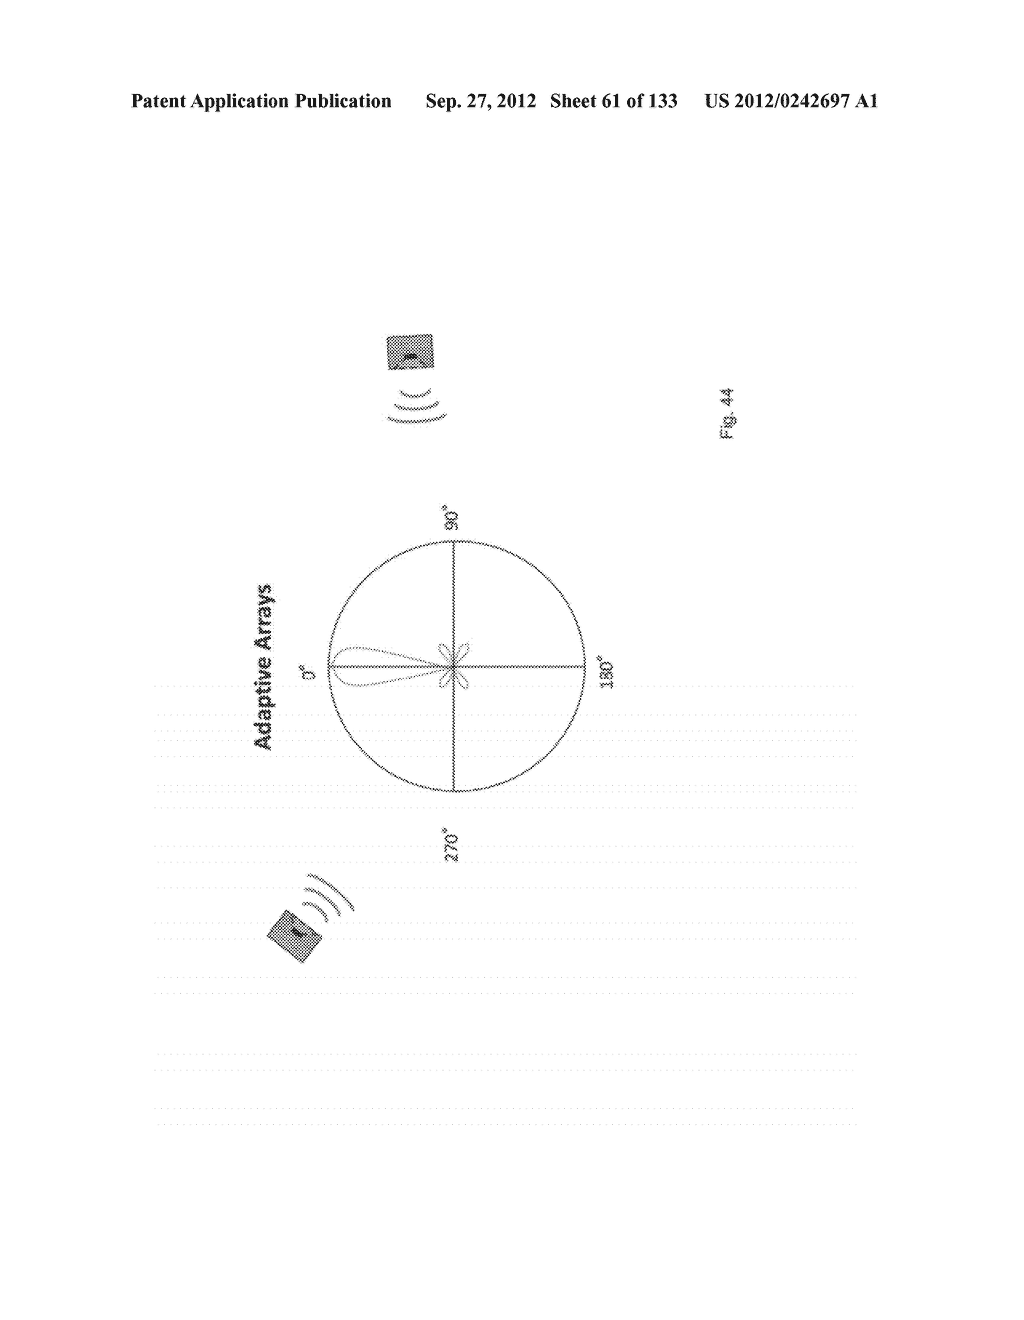 SEE-THROUGH NEAR-EYE DISPLAY GLASSES WITH THE OPTICAL ASSEMBLY INCLUDING     ABSORPTIVE POLARIZERS OR ANTI-REFLECTIVE COATINGS TO REDUCE STRAY LIGHT - diagram, schematic, and image 62